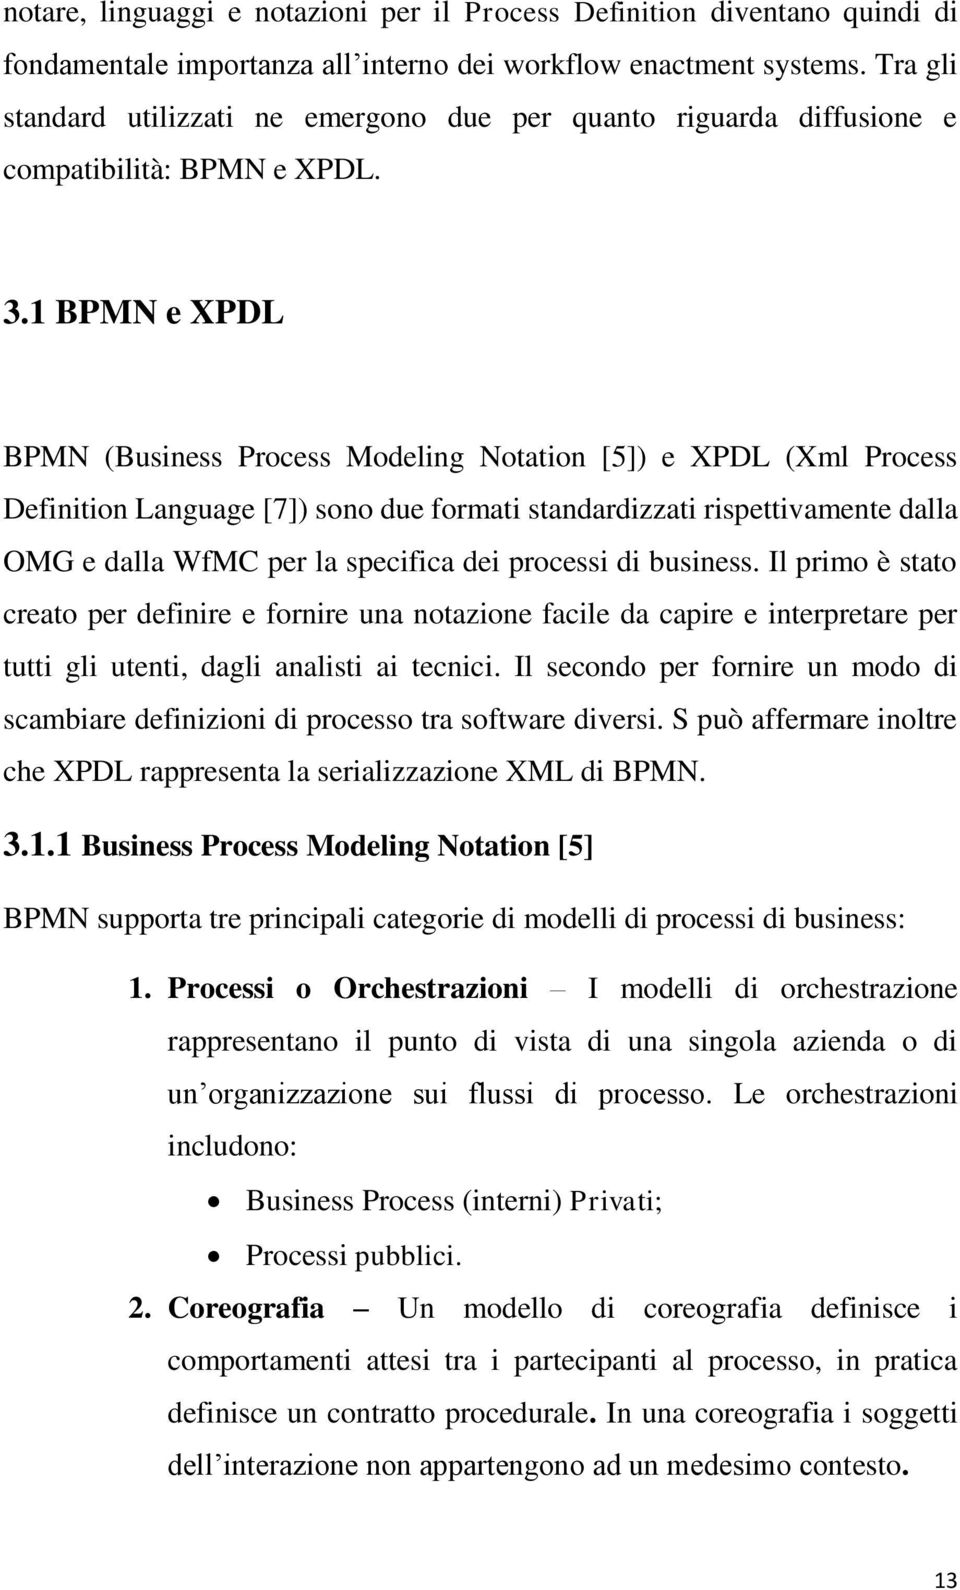 1 BPMN e XPDL BPMN (Business Process Modeling Notation [5]) e XPDL (Xml Process Definition Language [7]) sono due formati standardizzati rispettivamente dalla OMG e dalla WfMC per la specifica dei